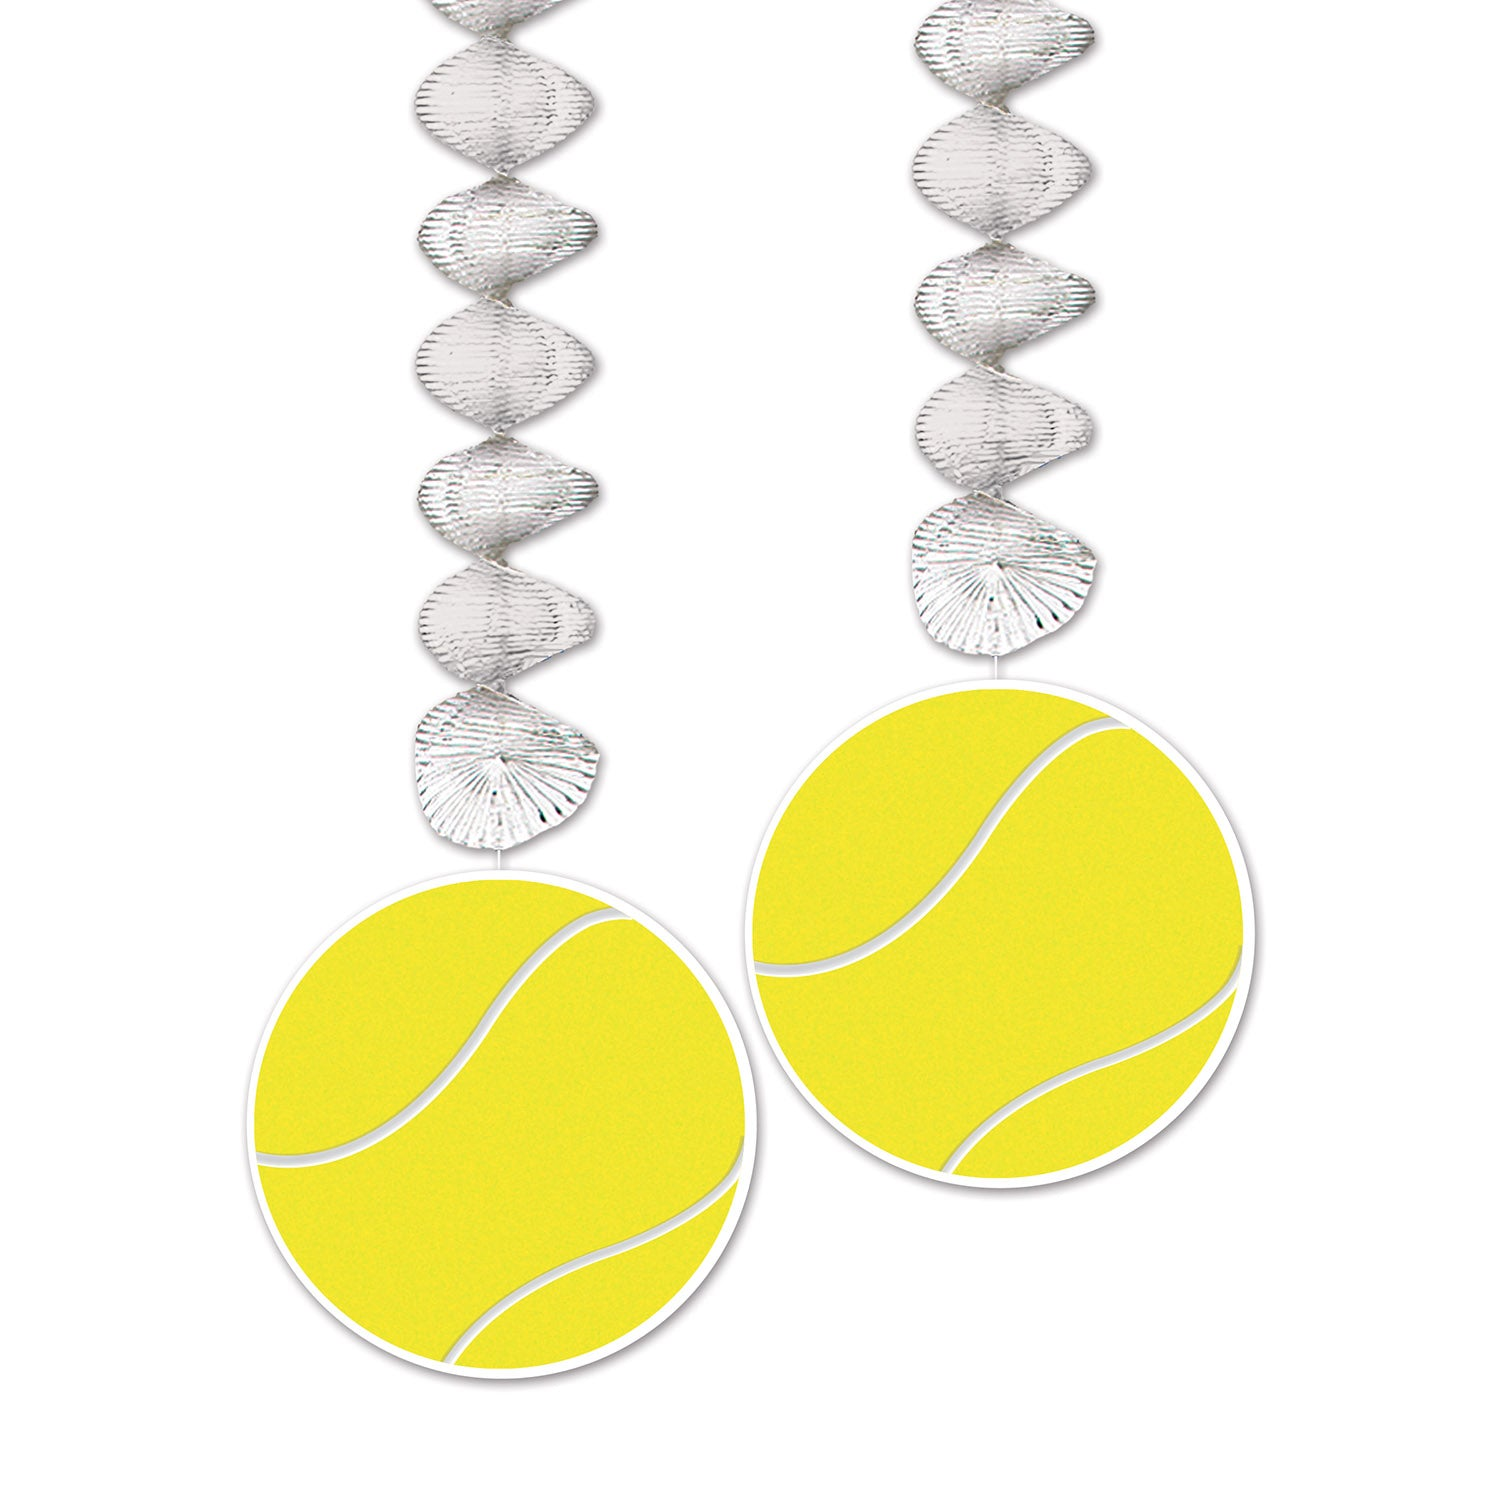 Tennis Ball Danglers (2/Pkg) by Beistle - Tennis Theme Decorations